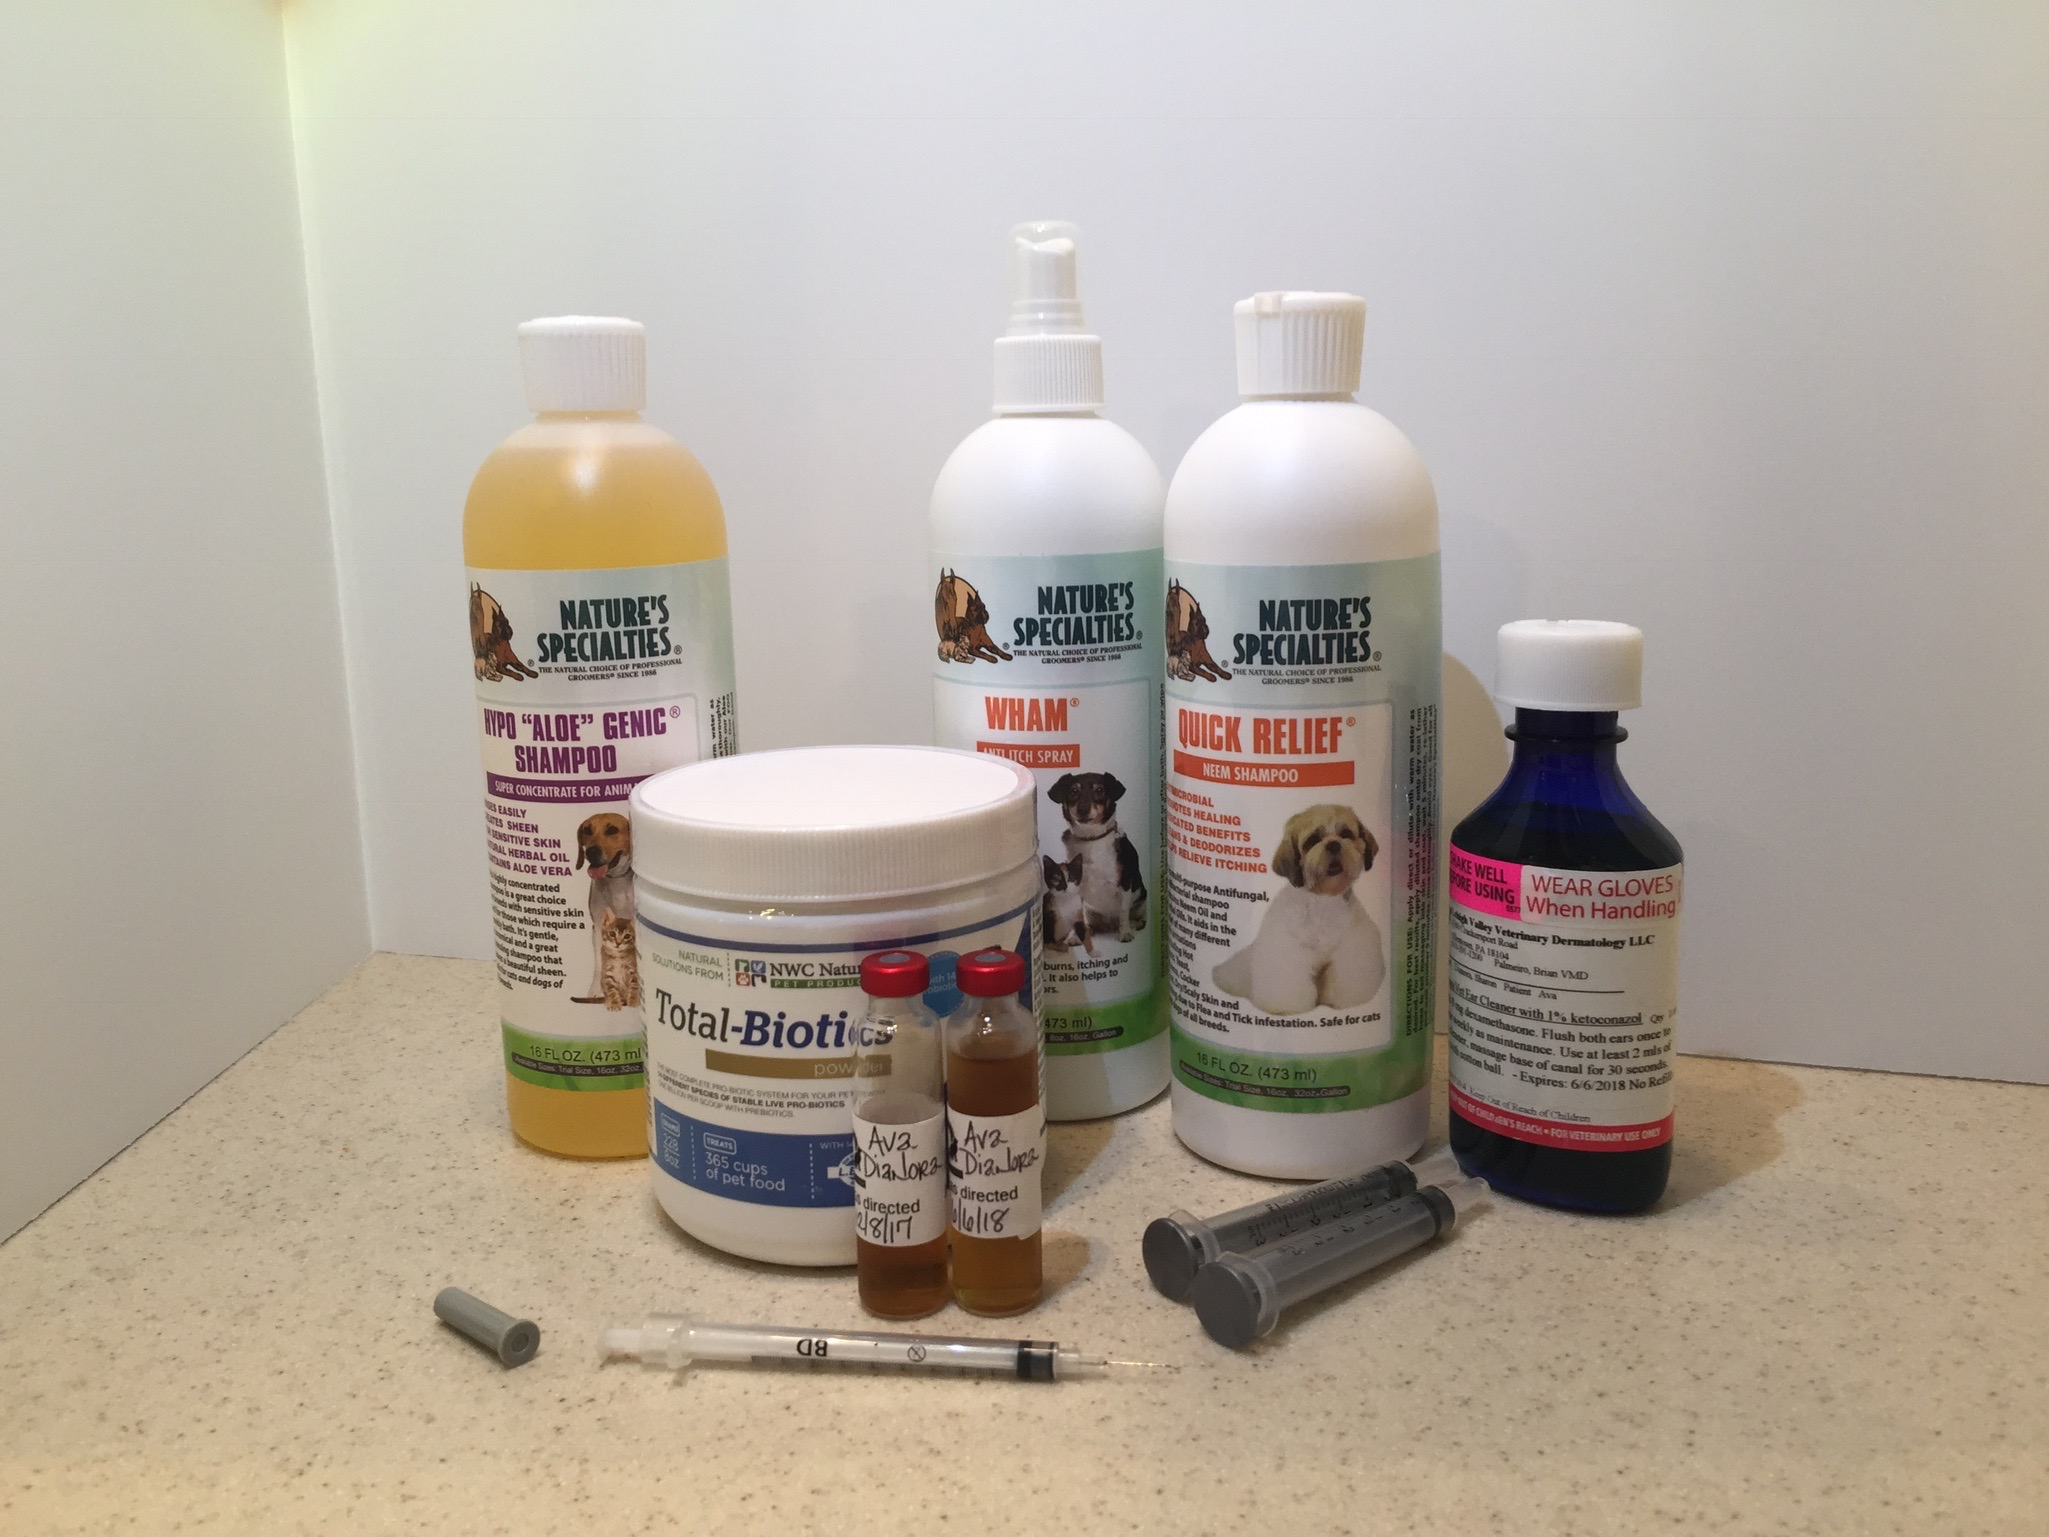 Products to treat dog allergies